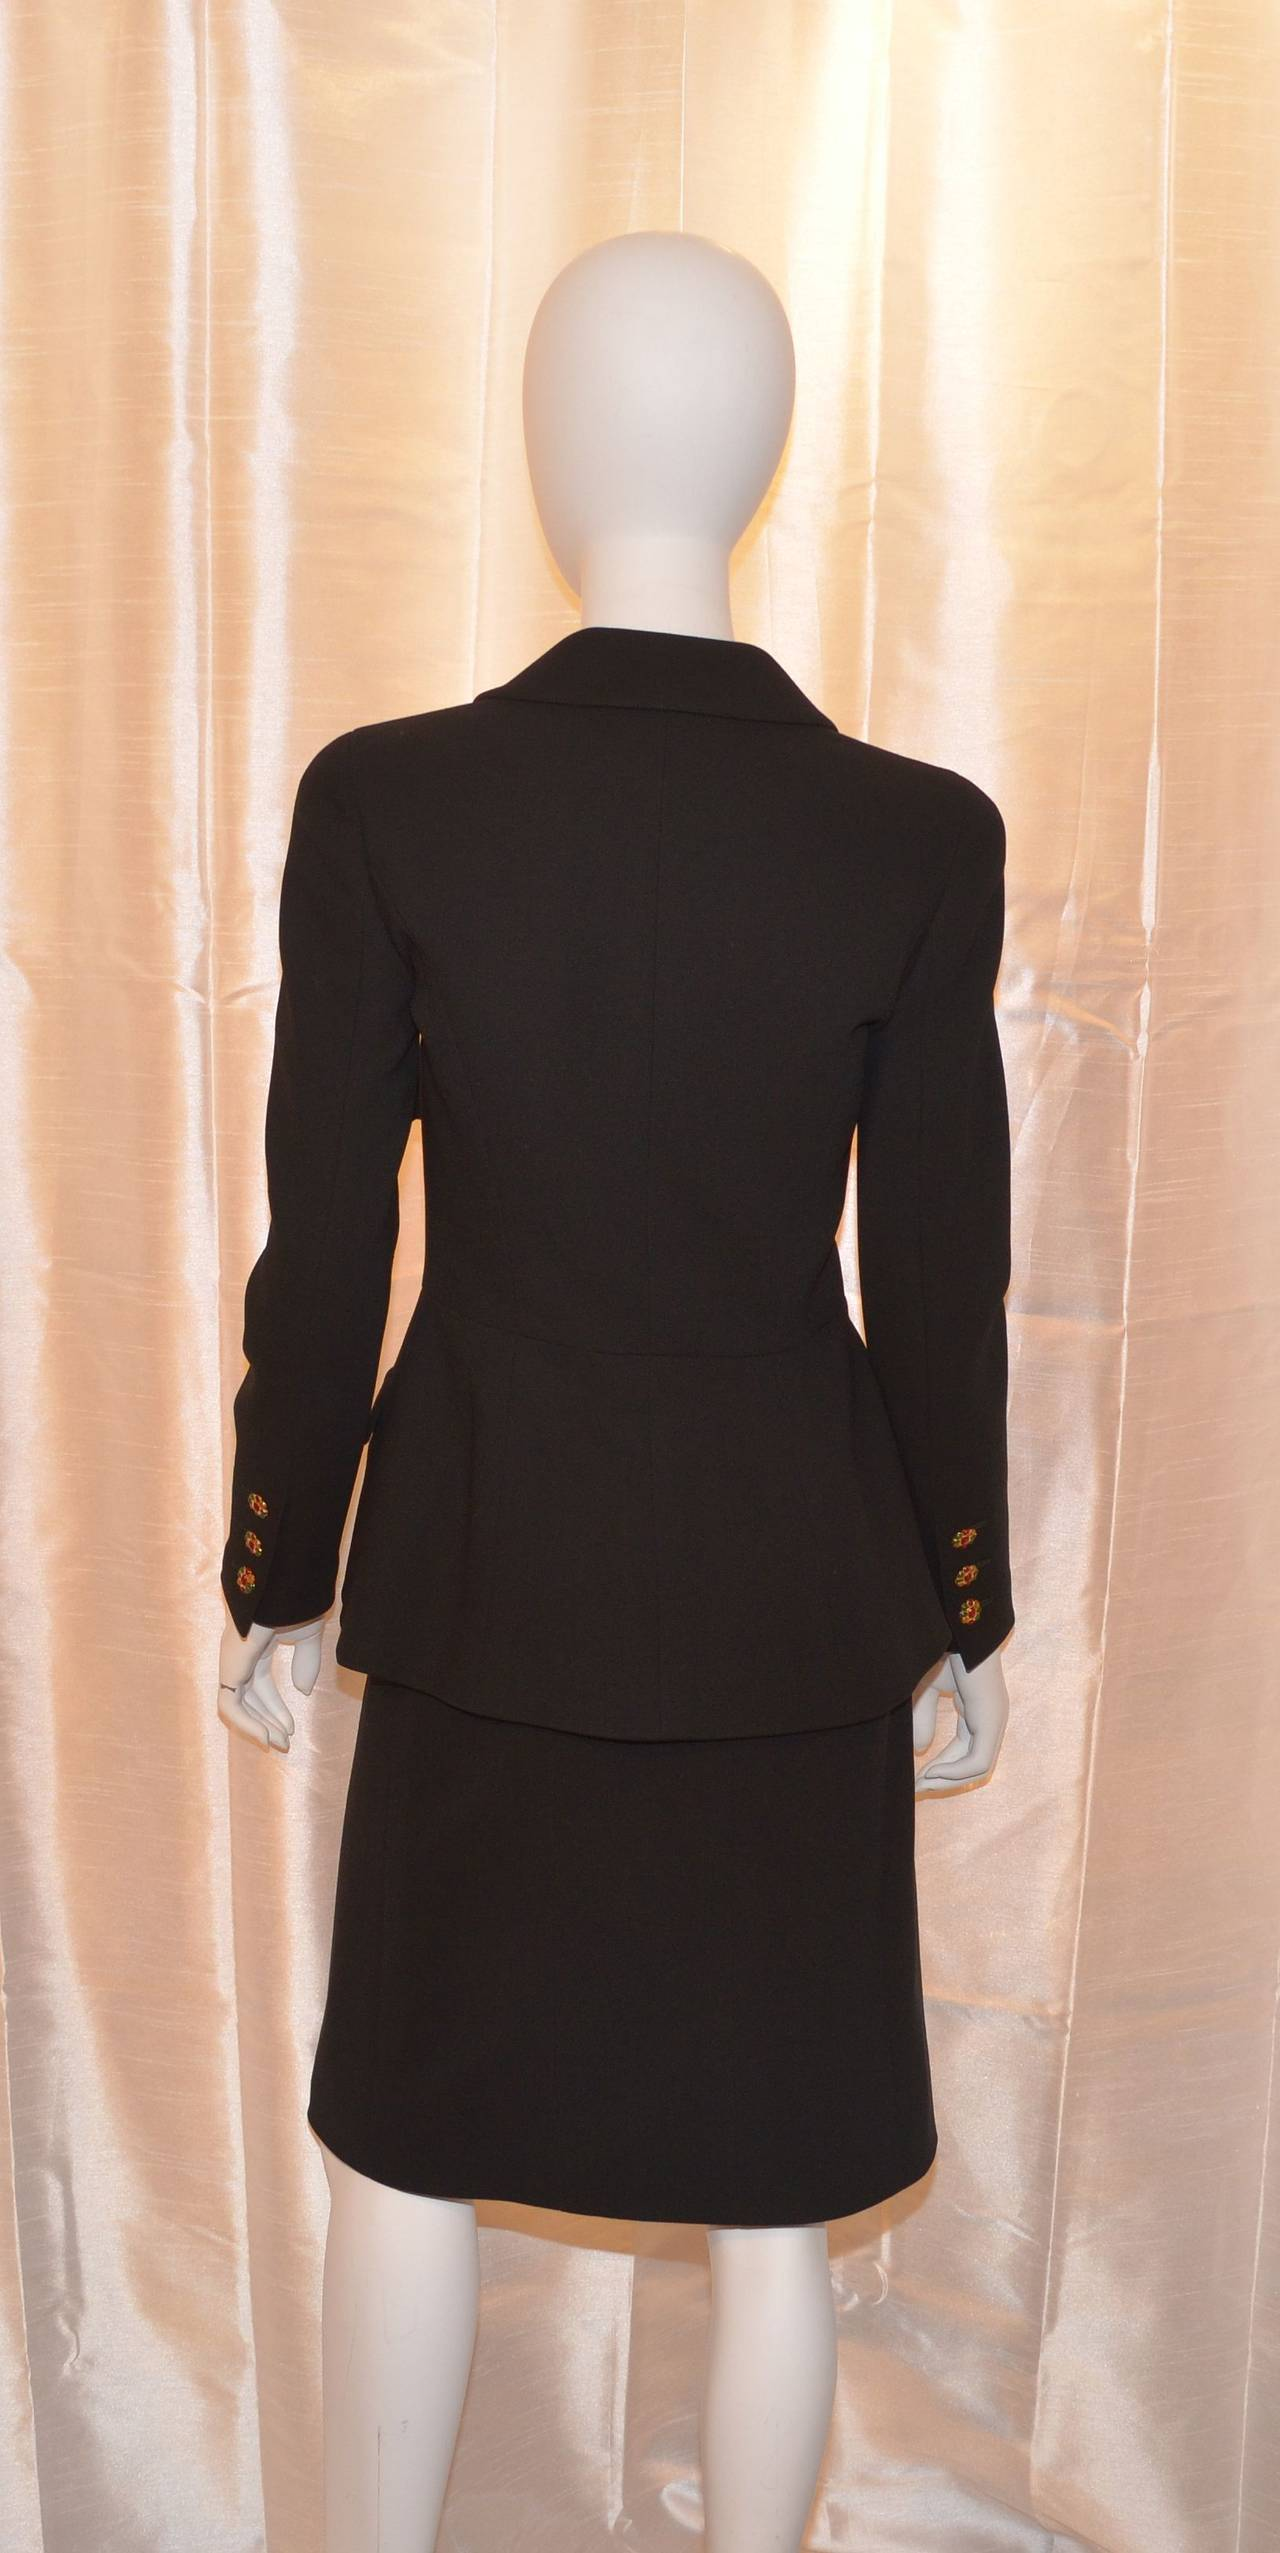 Black Chanel 1996 A Jacket Skirt Suit Gripoix Buttons For Sale